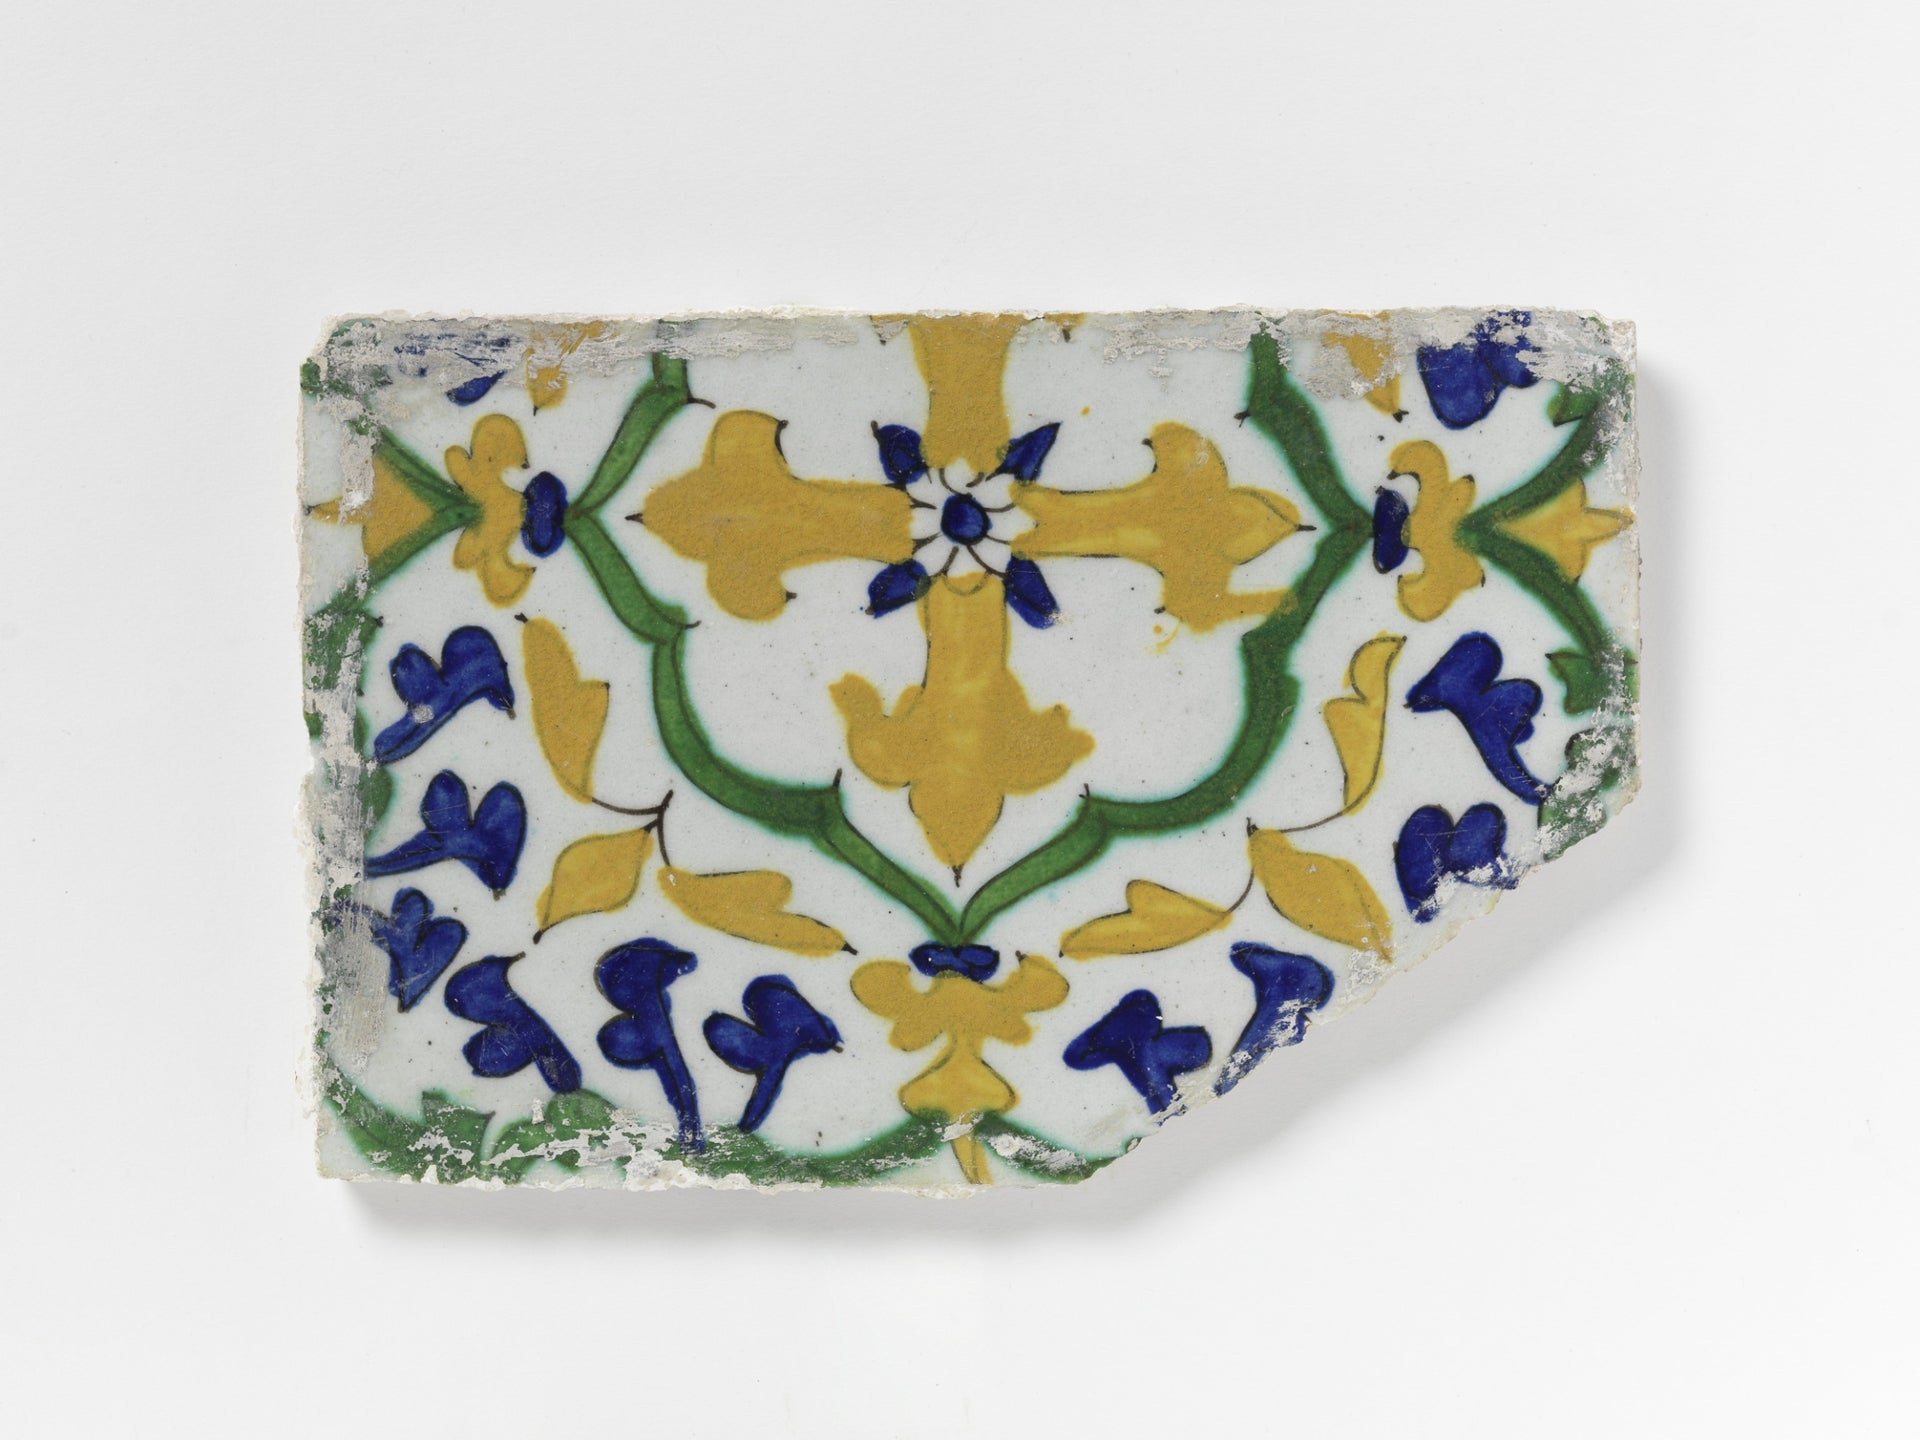 Tile bearing a yellow cross, Kütahya, 18th century.